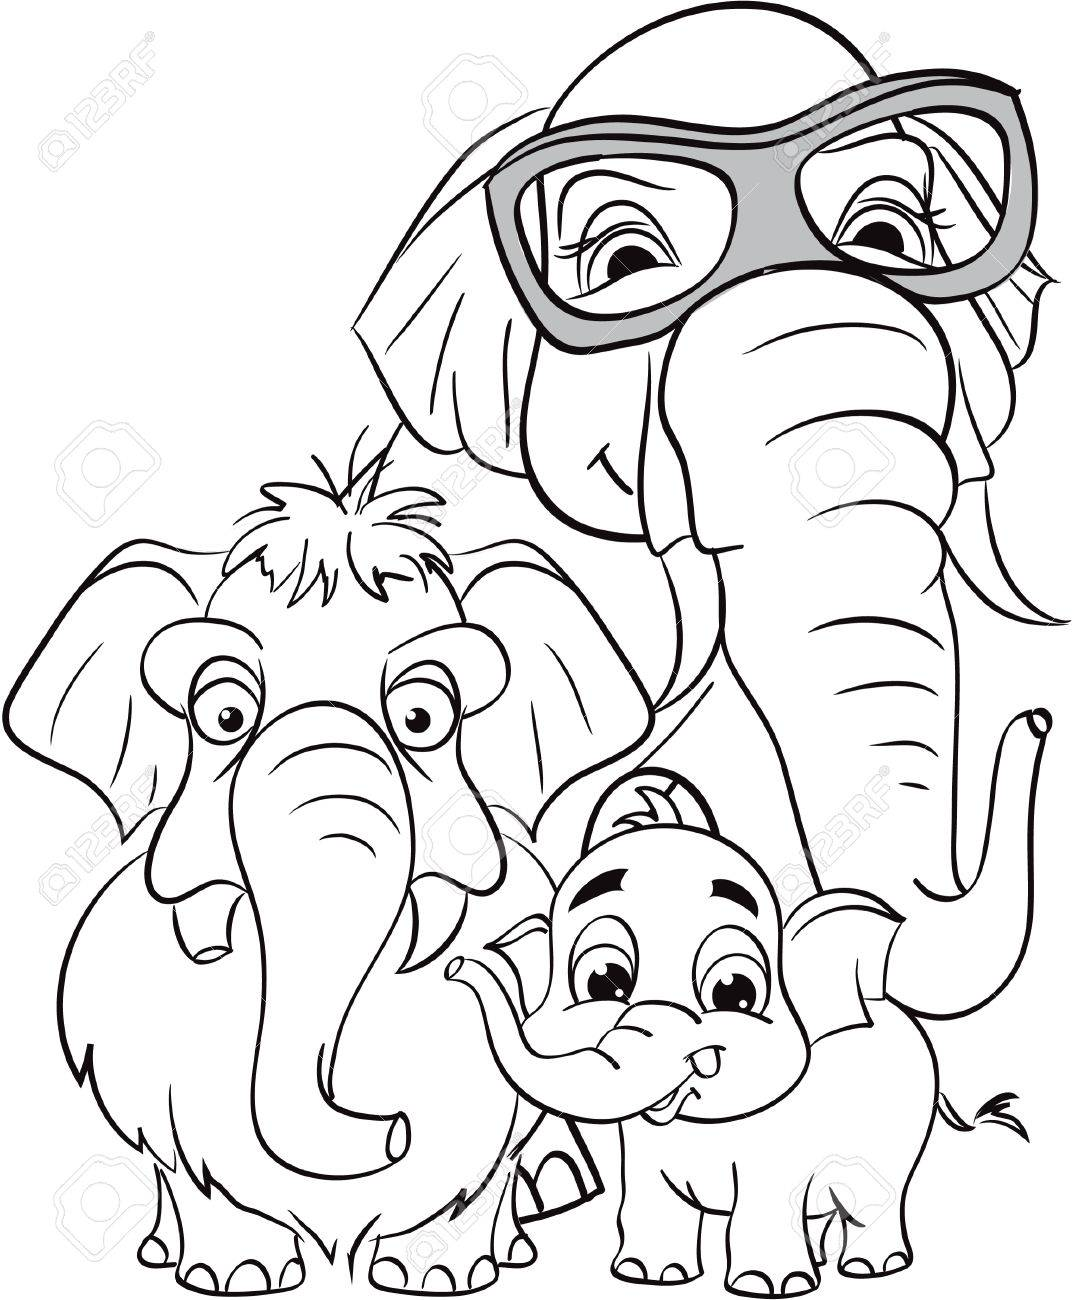 Outline Drawing Of The Family Of Elephants Royalty Free Cliparts ...